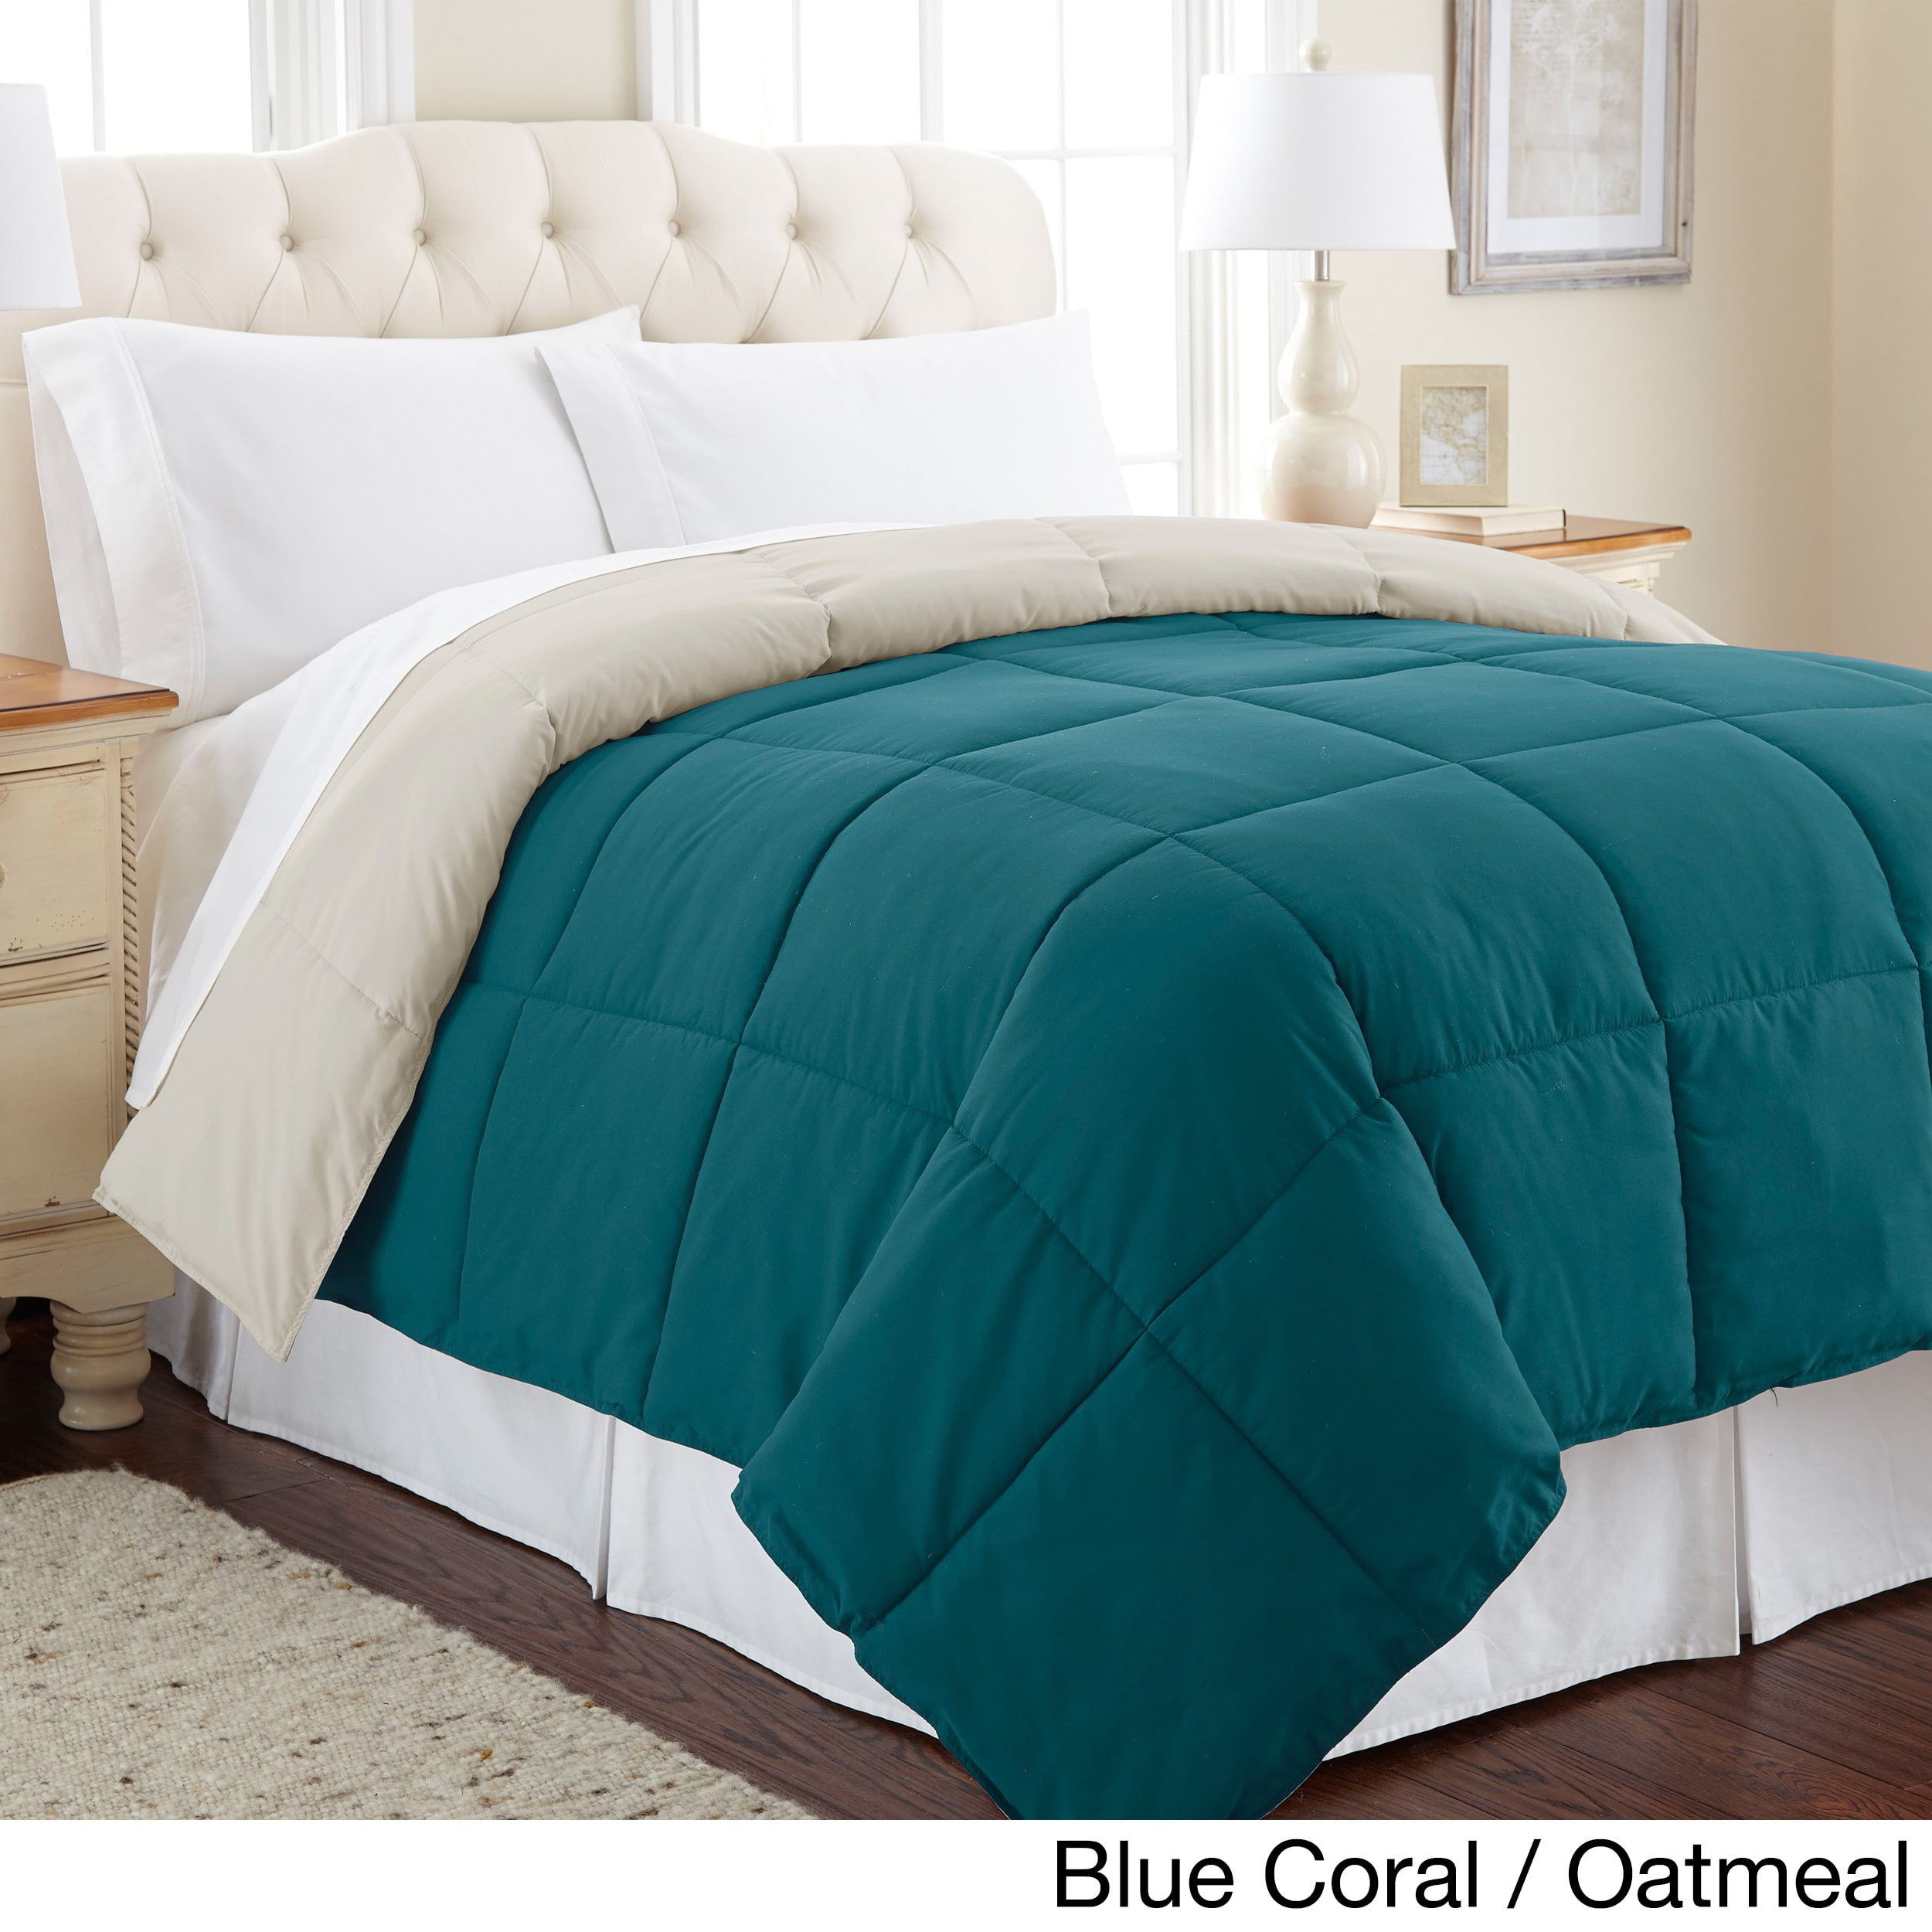 All Season Reversible Down Alternative Microfiber Comforter Blue Coral/Oatmeal - Queen